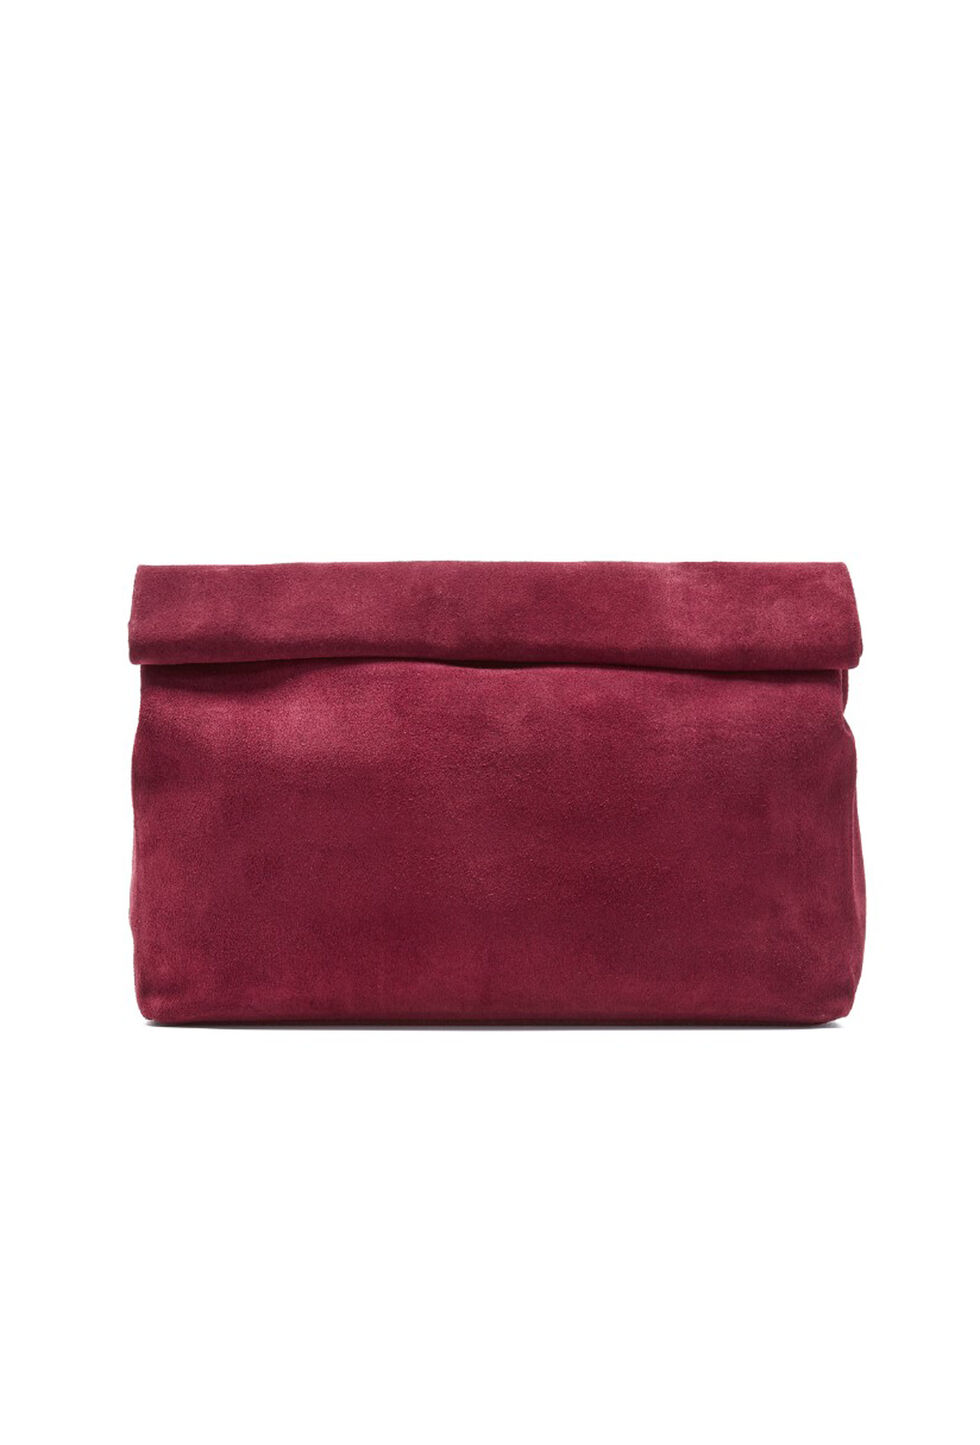 Trina Turk The Lunch Clutch - Burgundy - Size Fit Guide